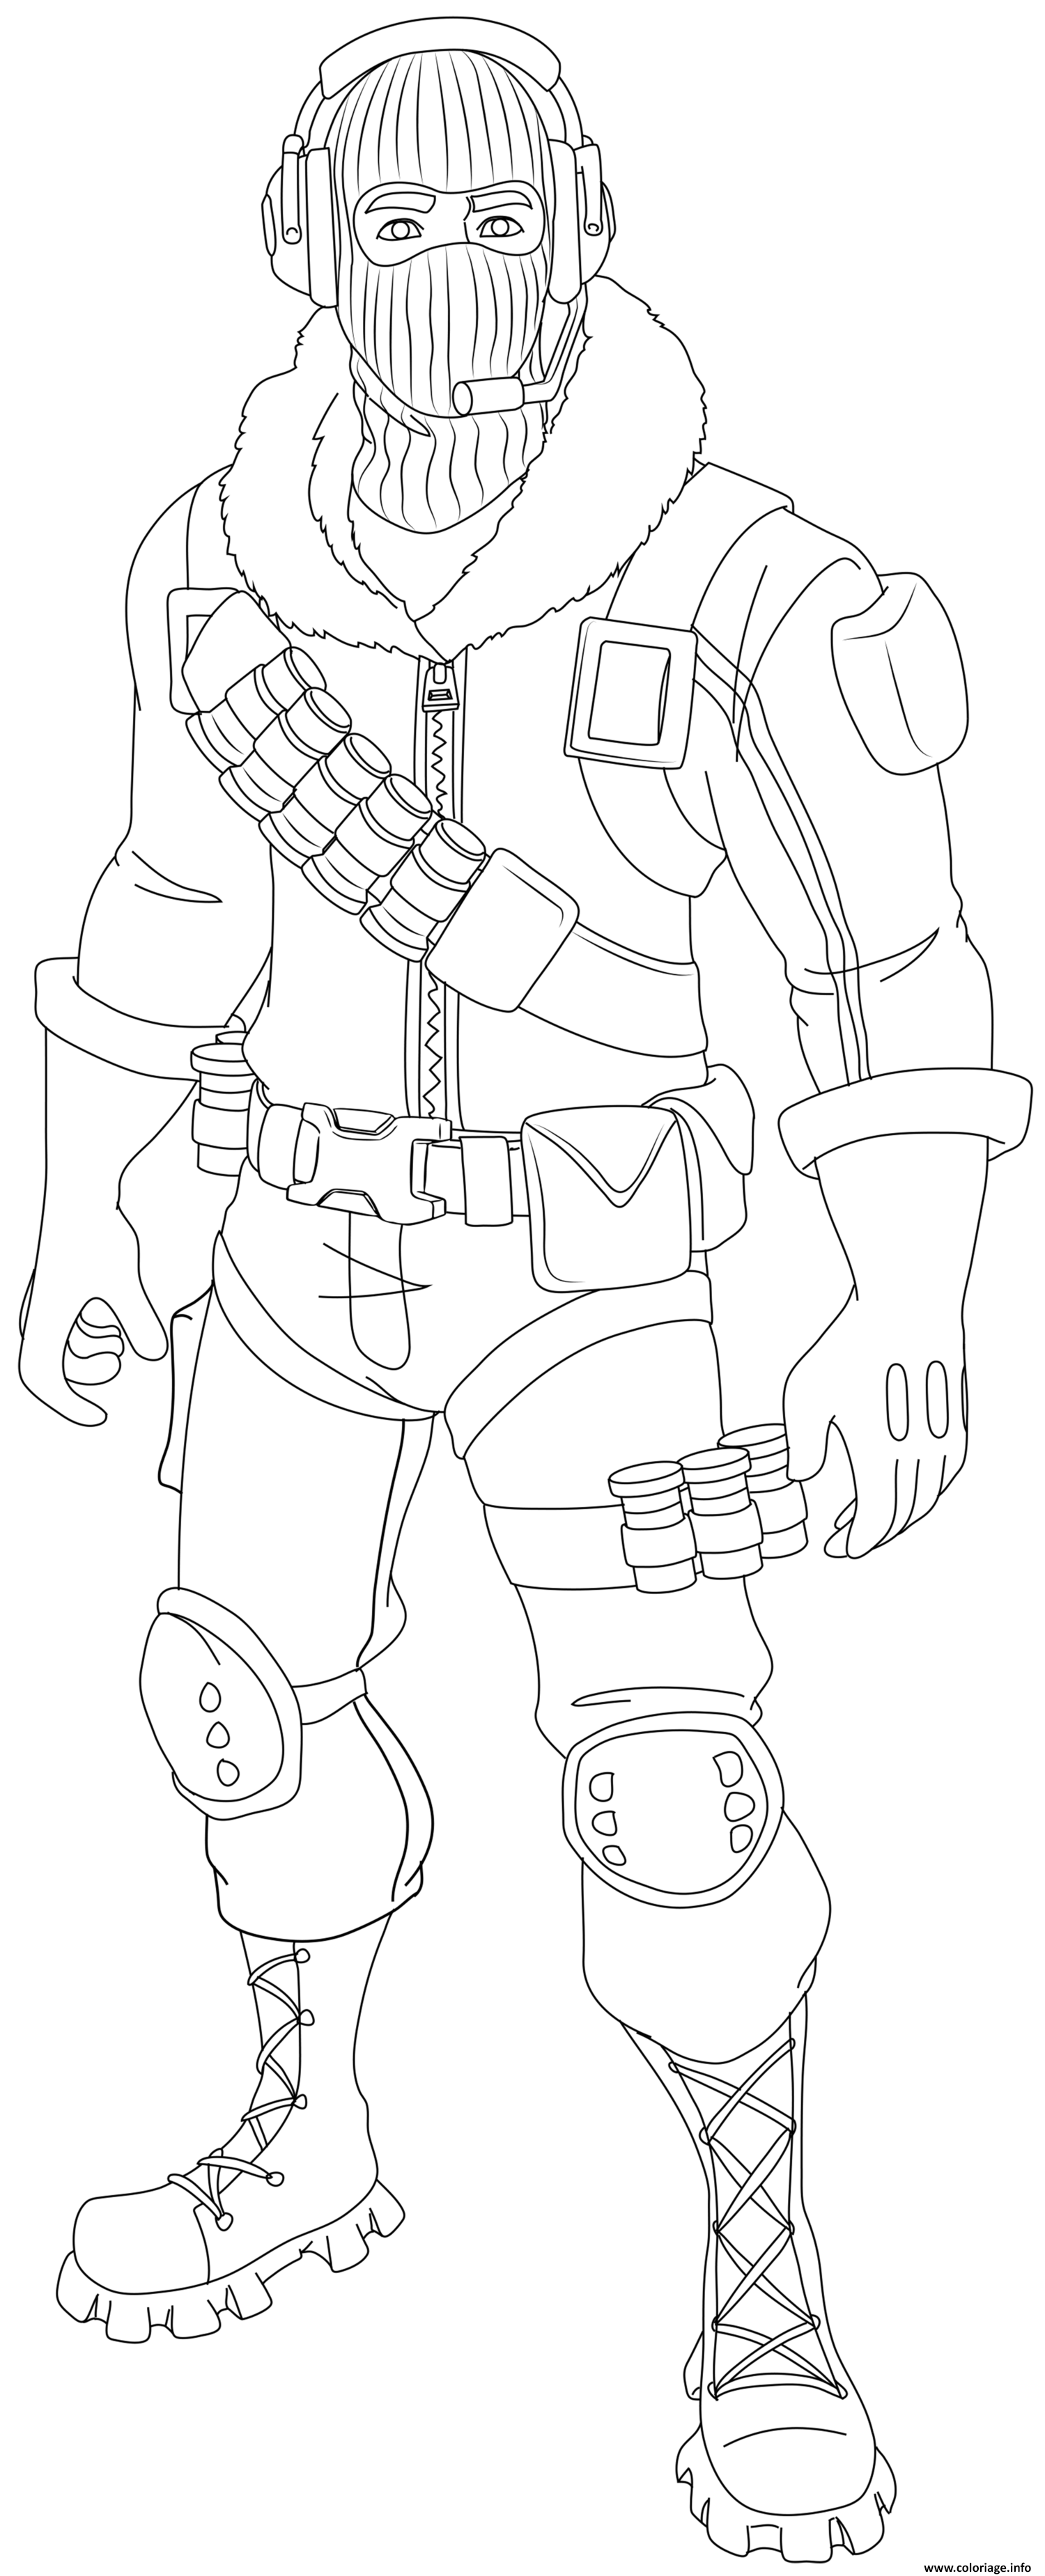 Coloriage Fortnite Raptor Skin Hd Dessin